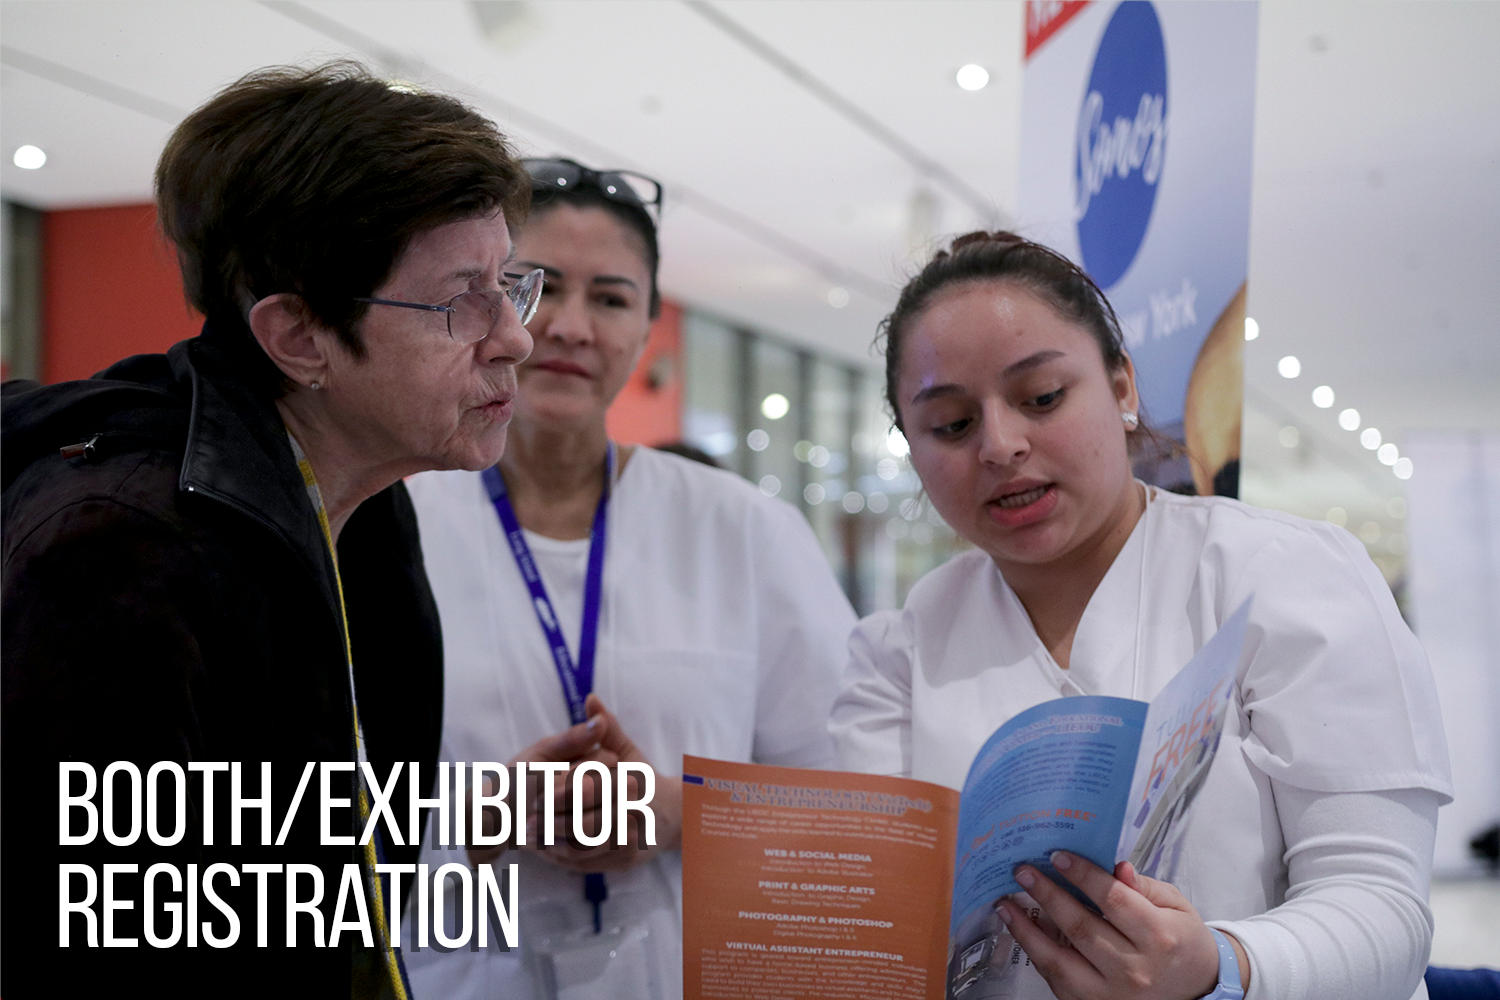 Booth/Exhibitor Registration for Albany2020